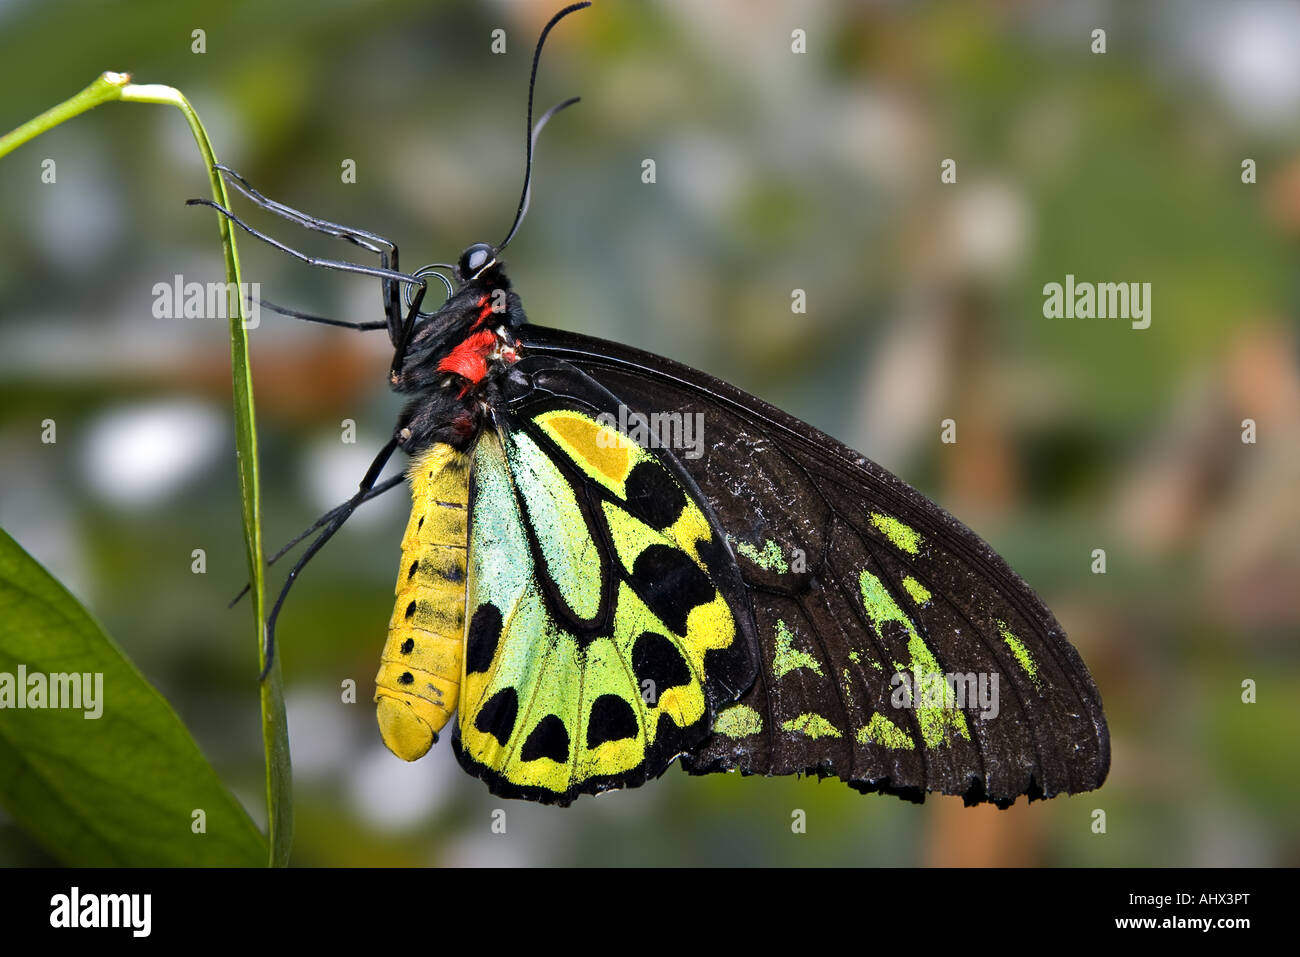 close up image of a green and black butterfly - Stock Image